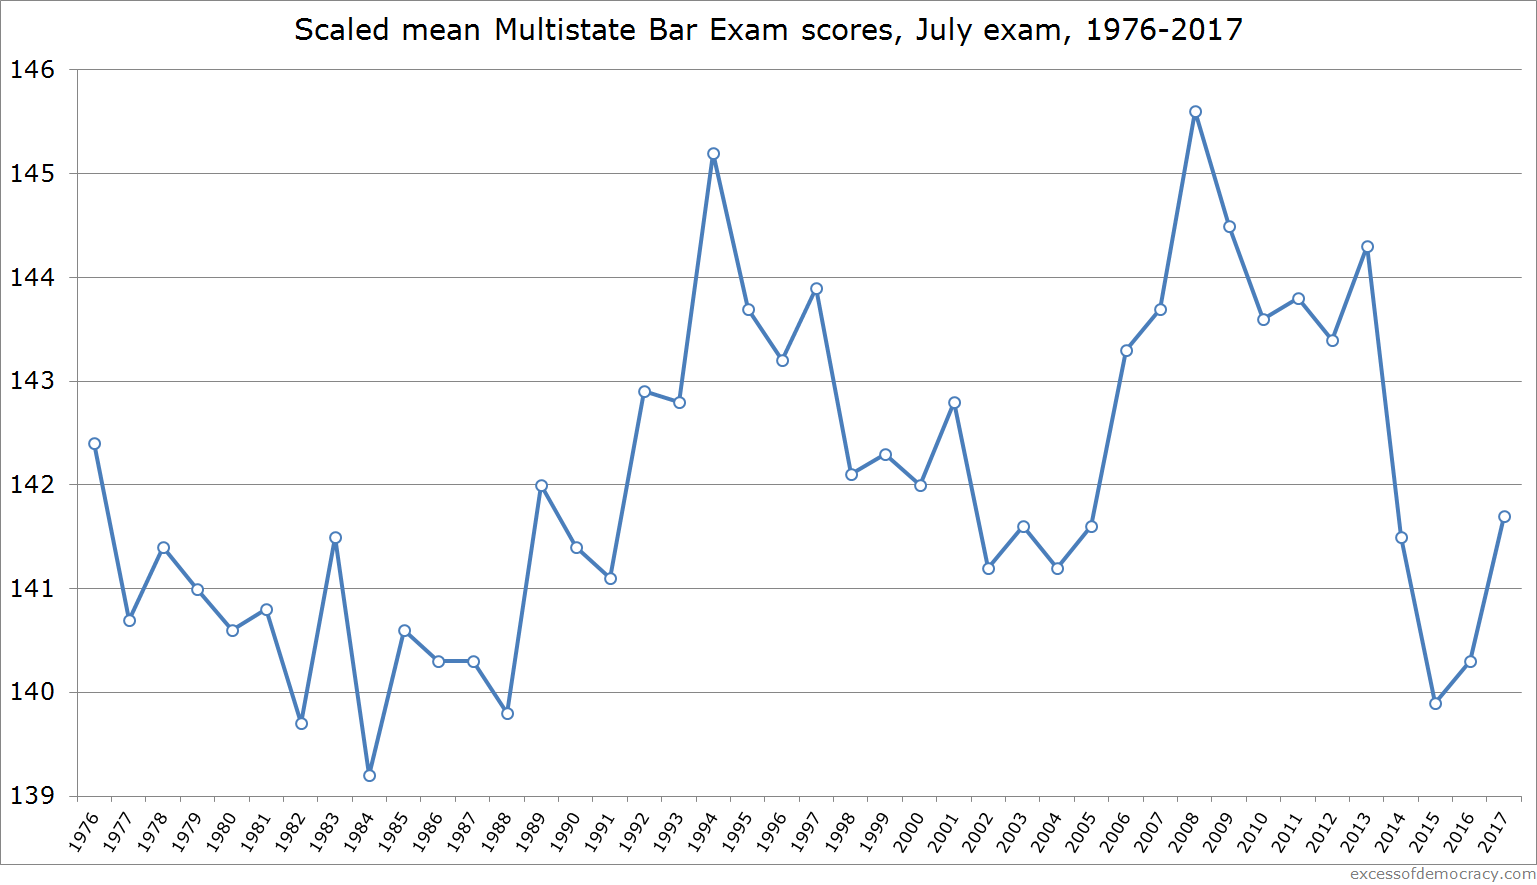 Bar exam scores rebound to highest point since 2013 — Excess of